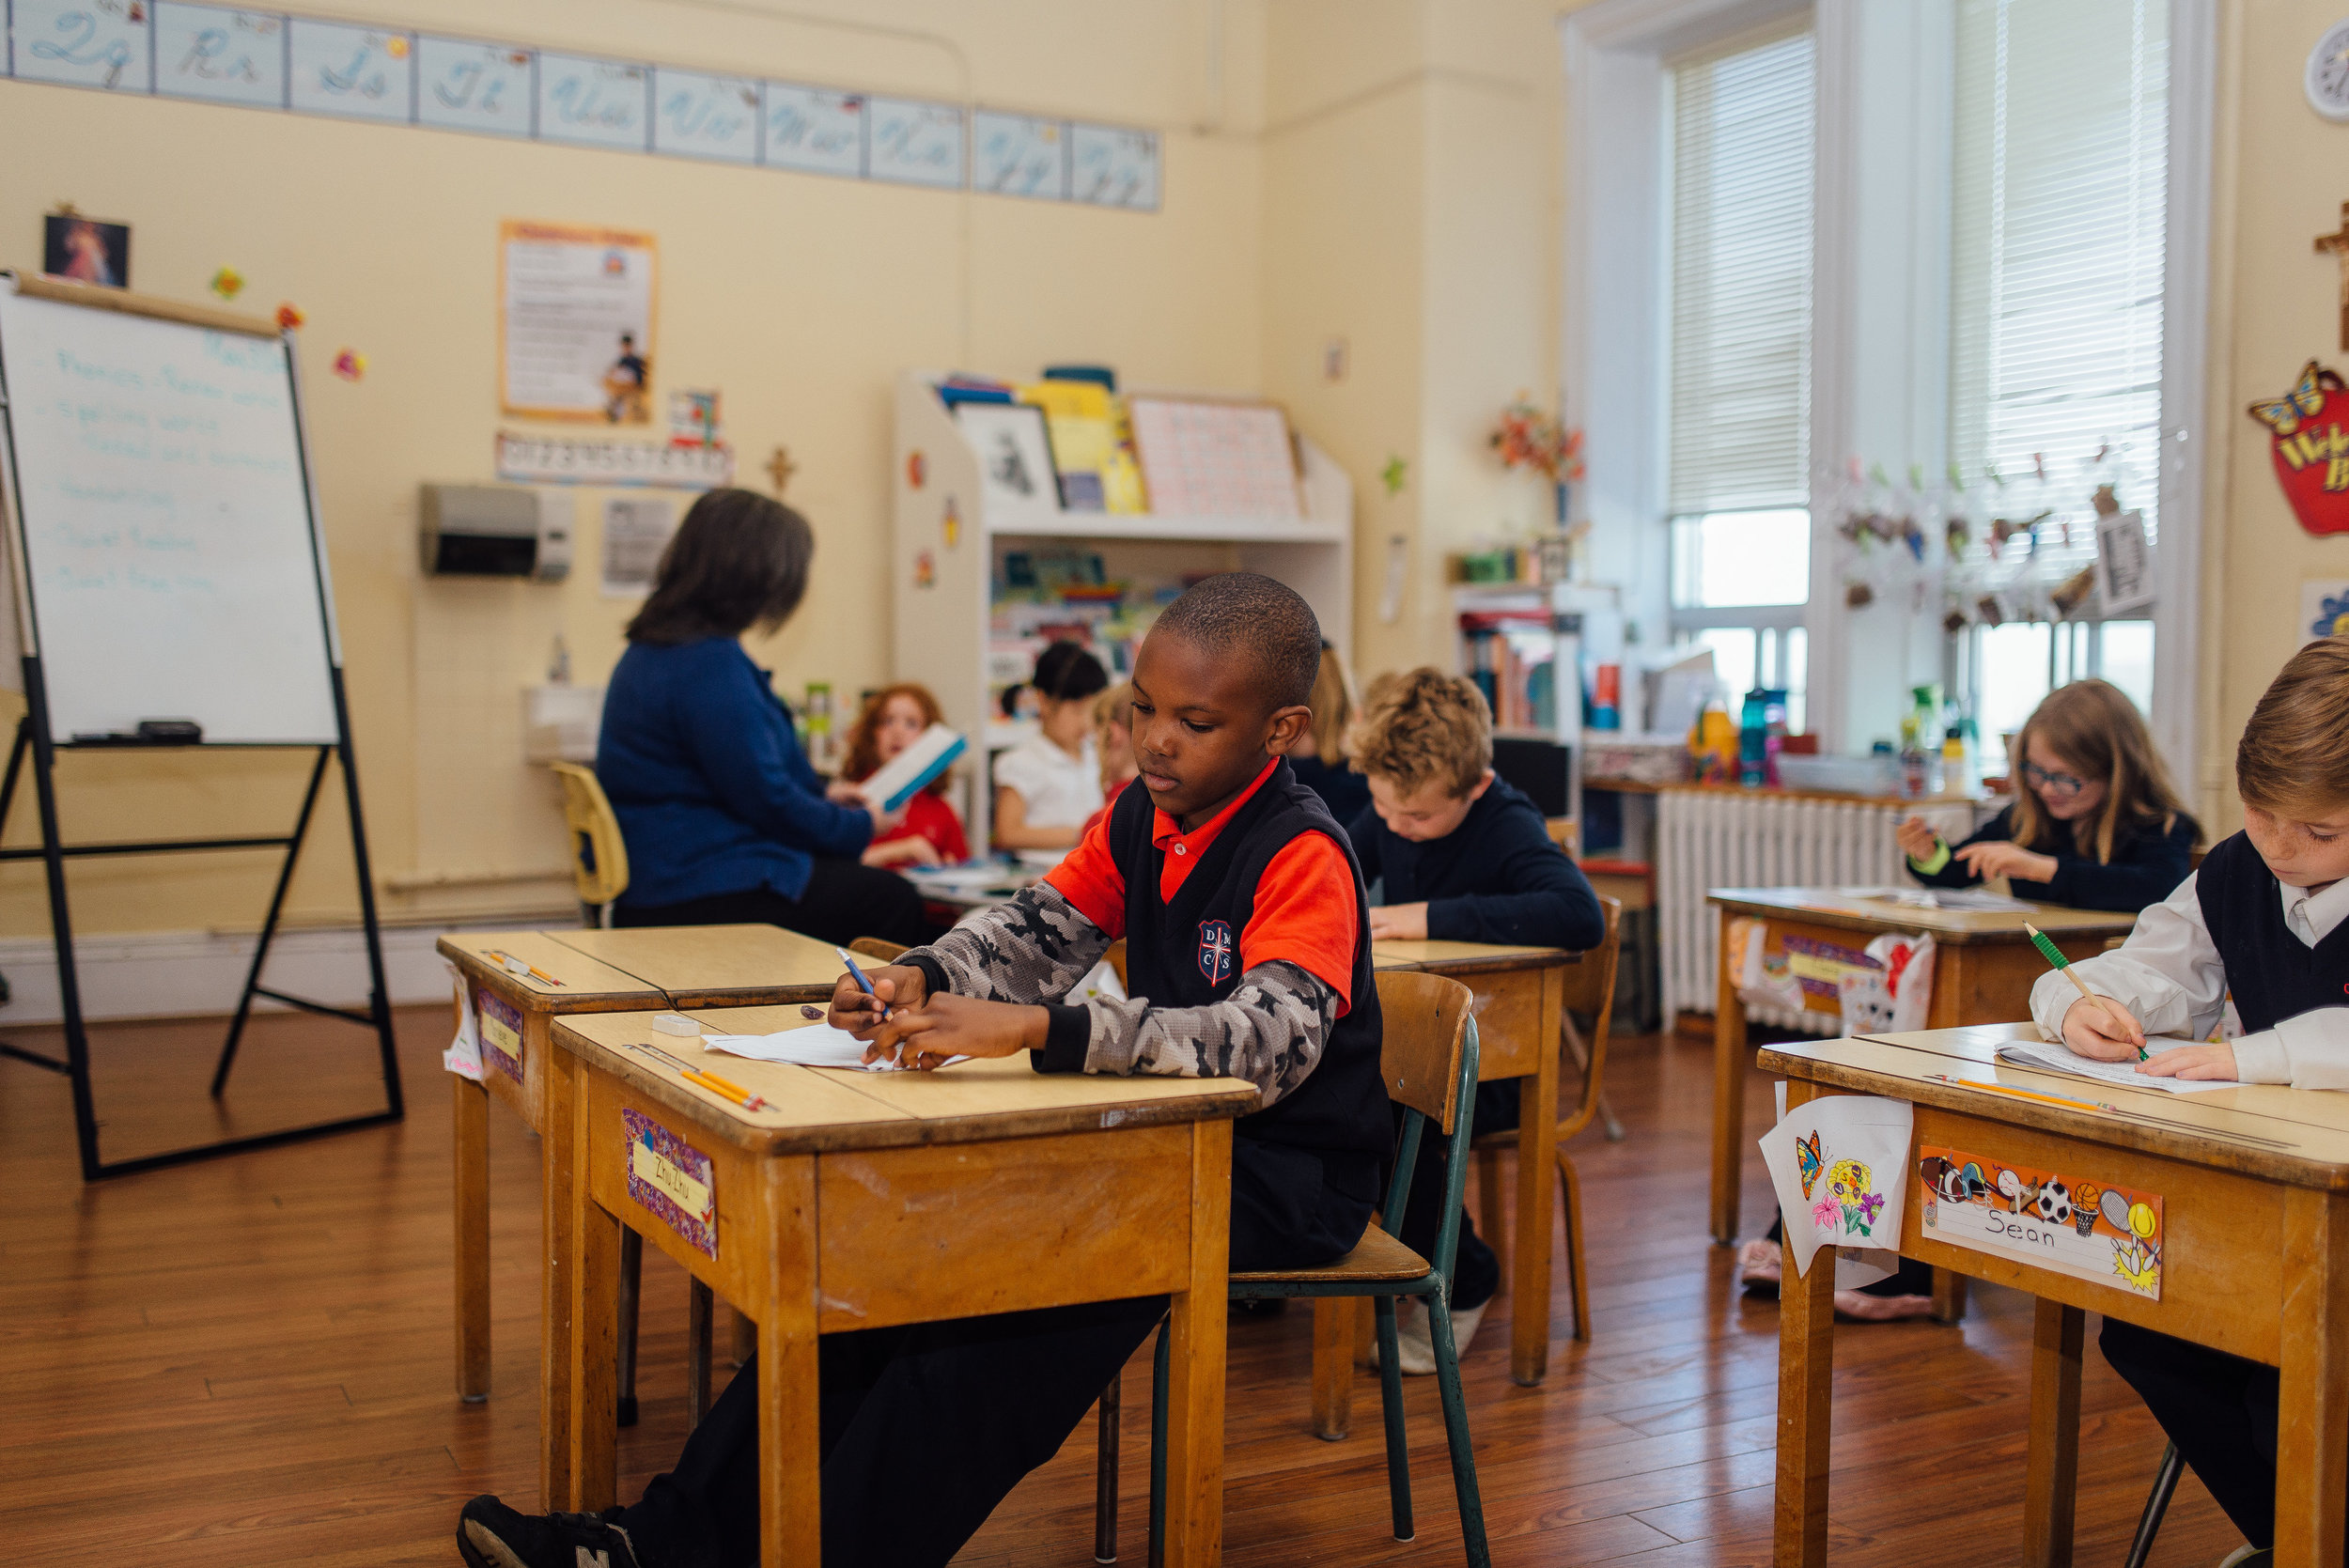 Our split classes encourage a balance of teamwork and independent working. We love the outcome of having two grades in the same class as it encourages the younger students to look up to their older peers and we foster a sense of leadership in the older students, allowing them to help the younger grade in their class. This creates a wonderful dynamic in our school!